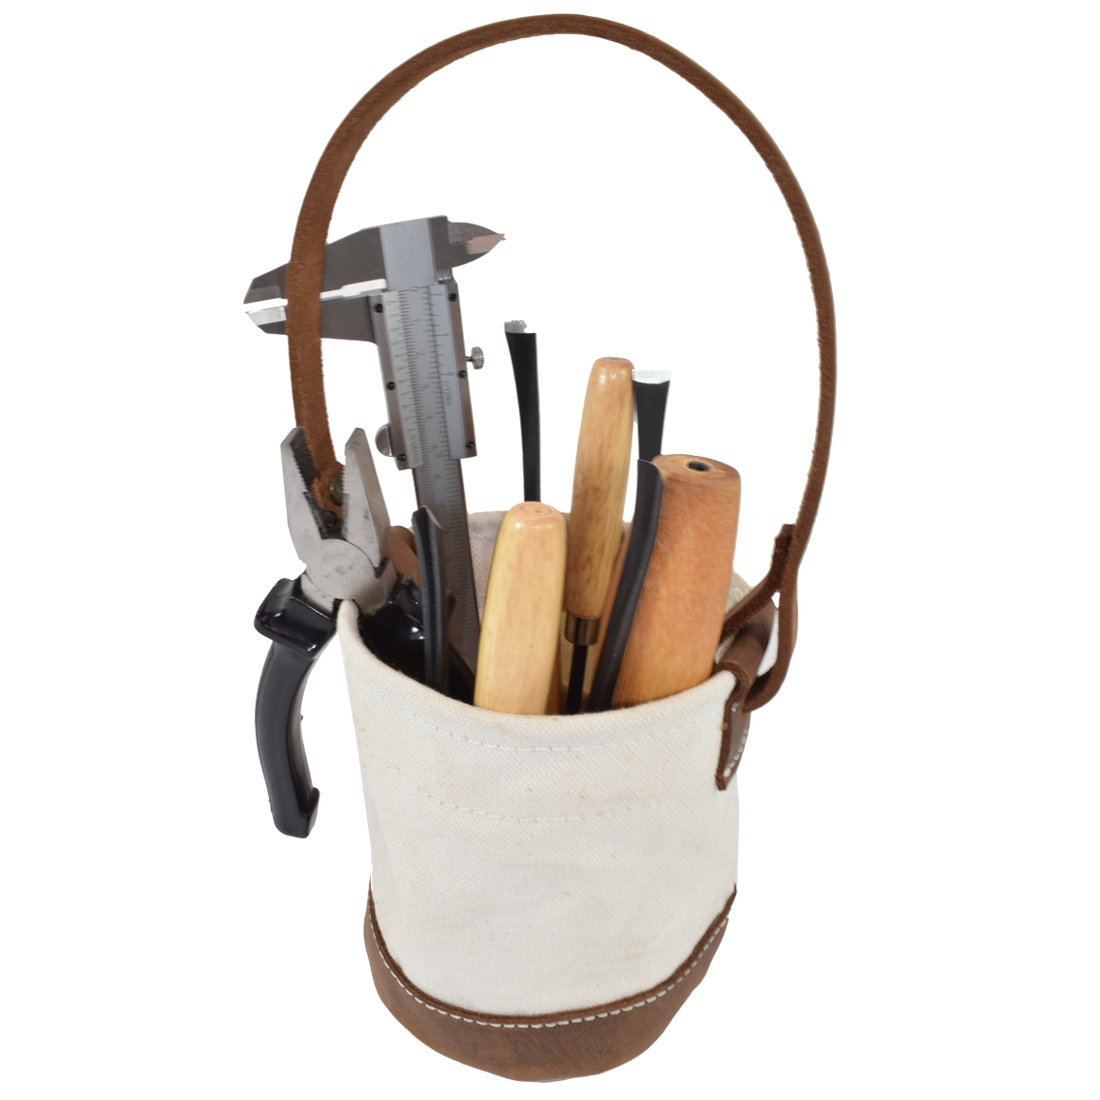 Canvas Leather Bottom Tool Bucket for Work/Camping/Fishing Organizer Handmade by Hide & Drink